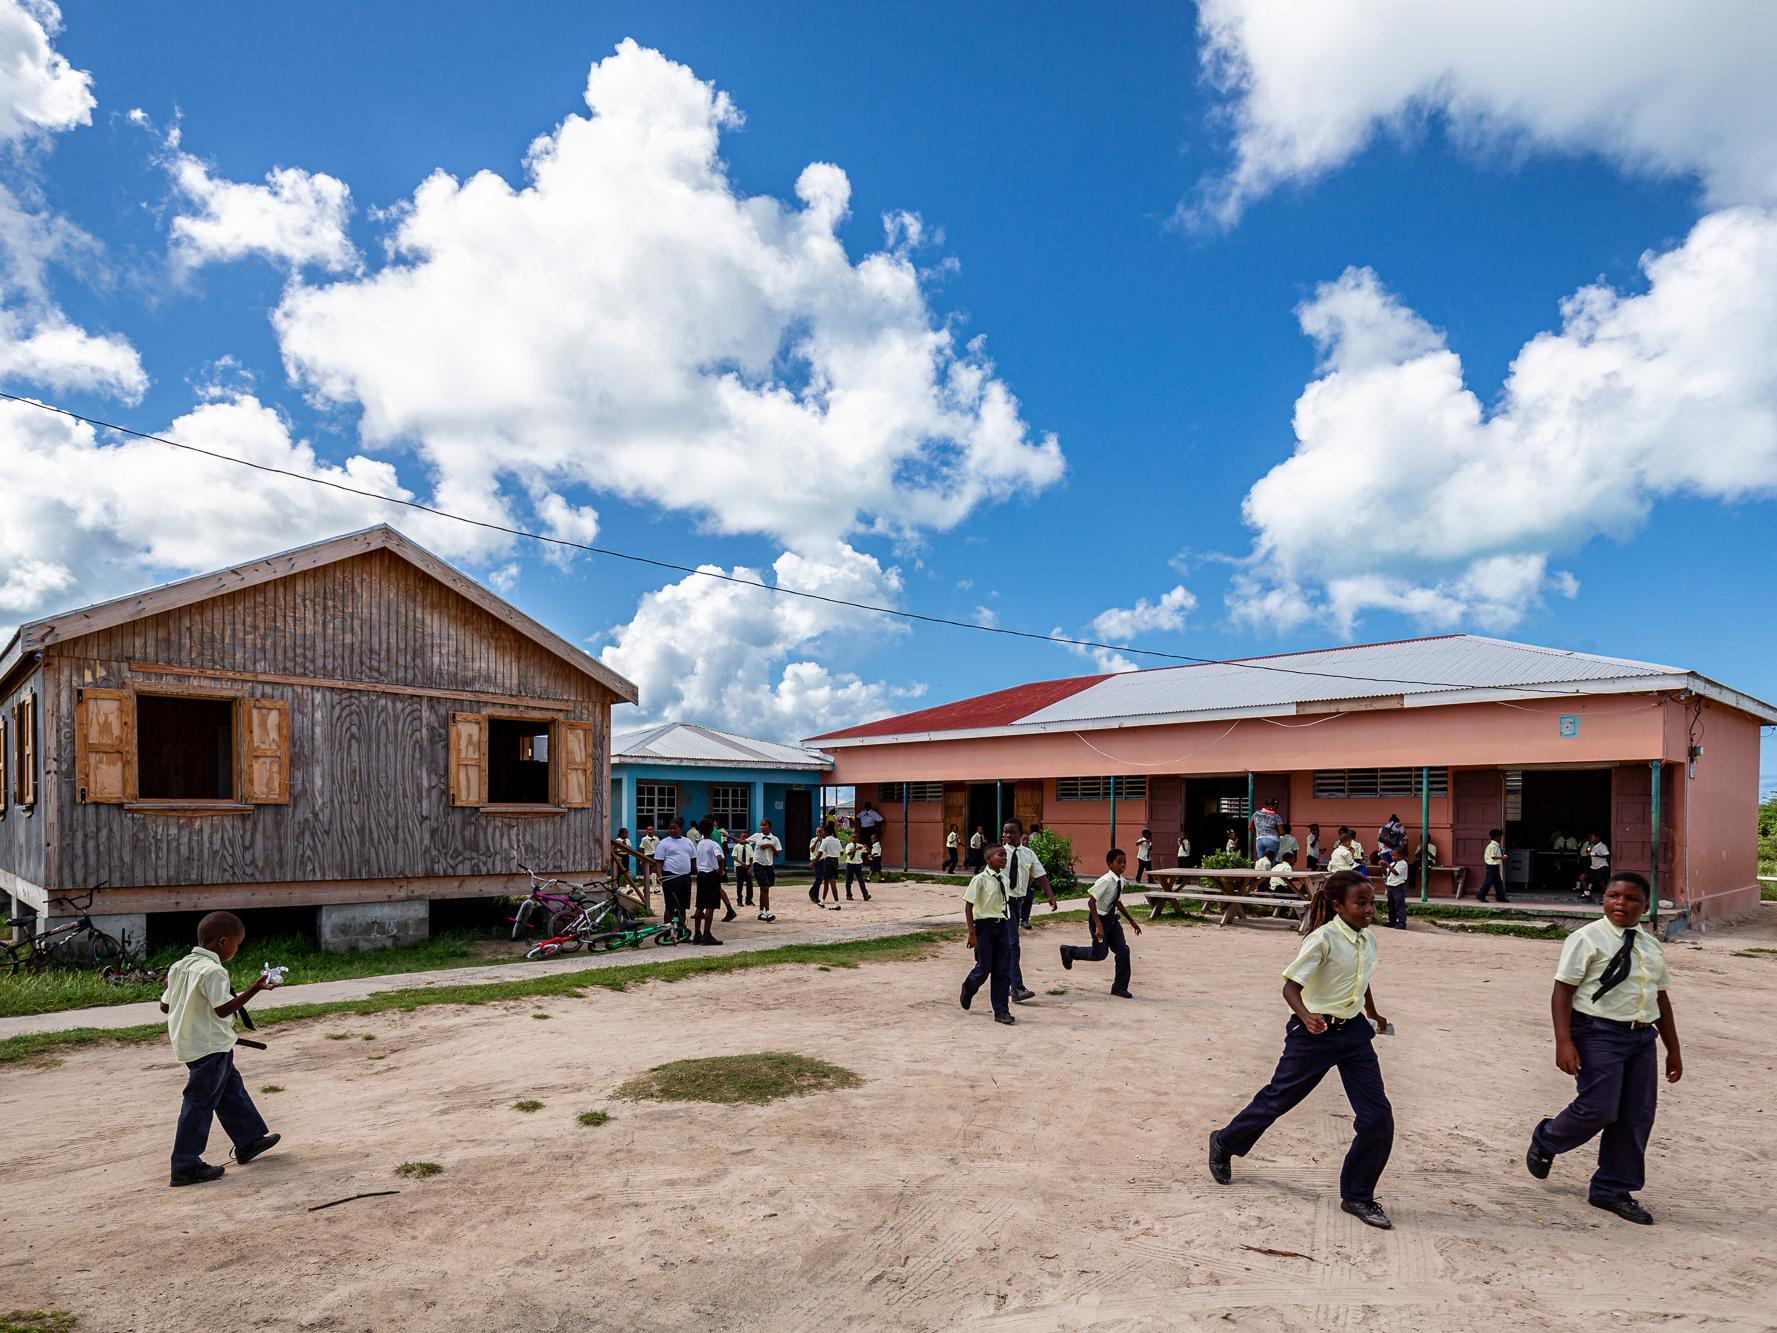 Children run in the courtyard outside Barbuda Primary School